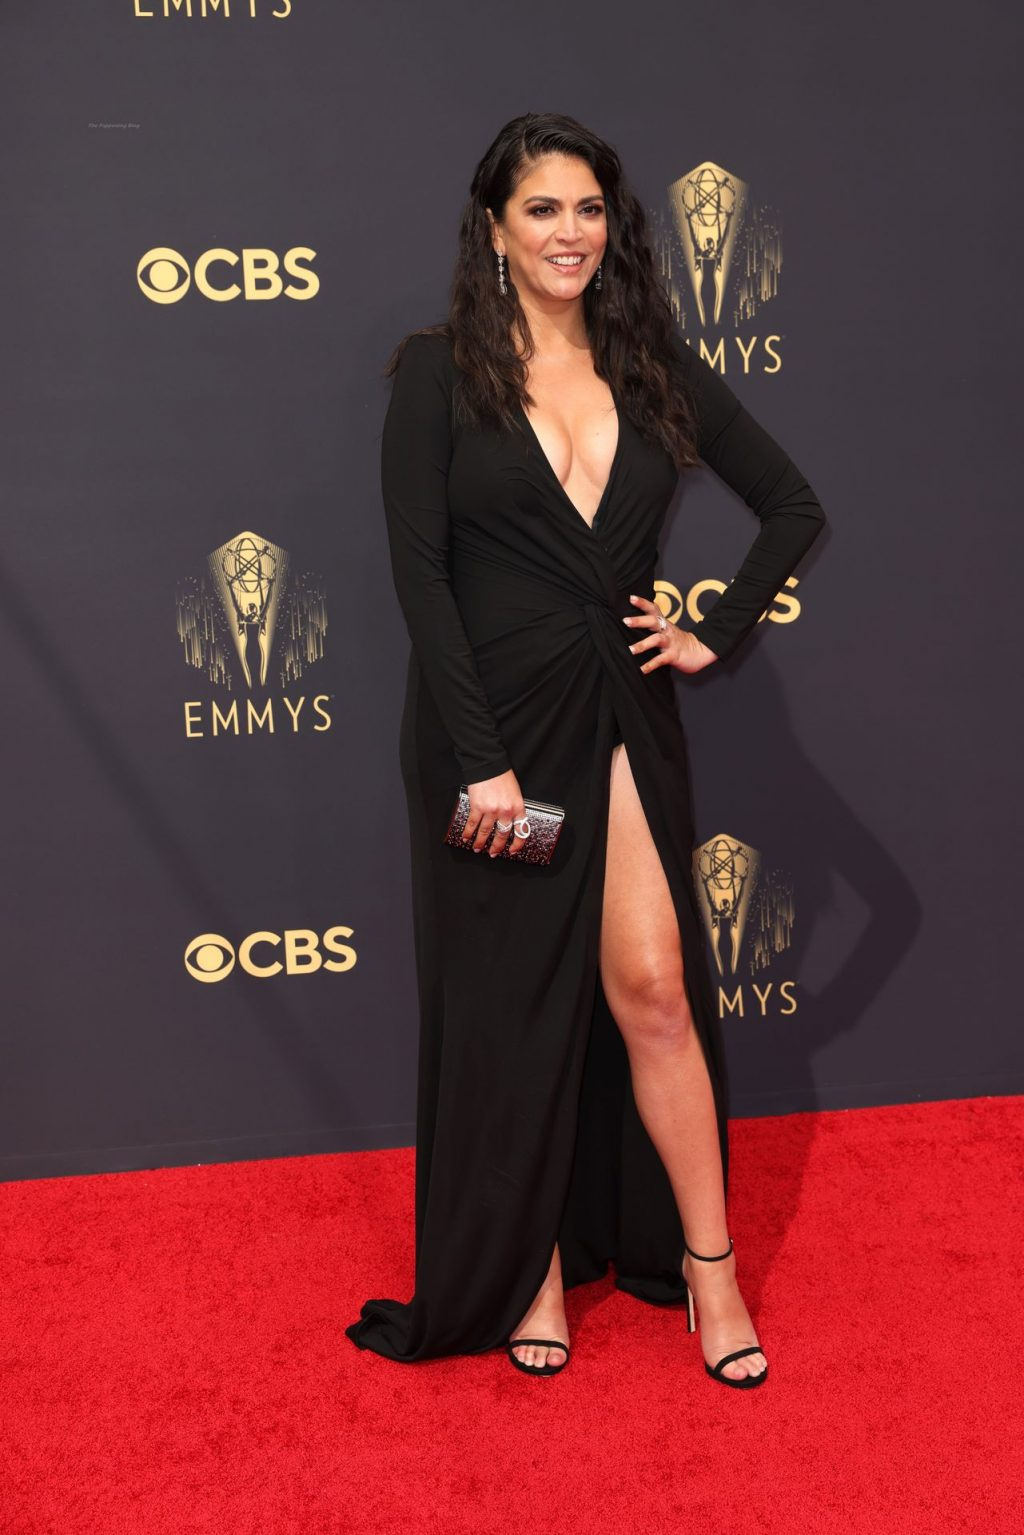 Cecily Strong Flaunts Her Boobs at the 73rd Primetime Emmy Awards in Los Angeles (12 Photos)